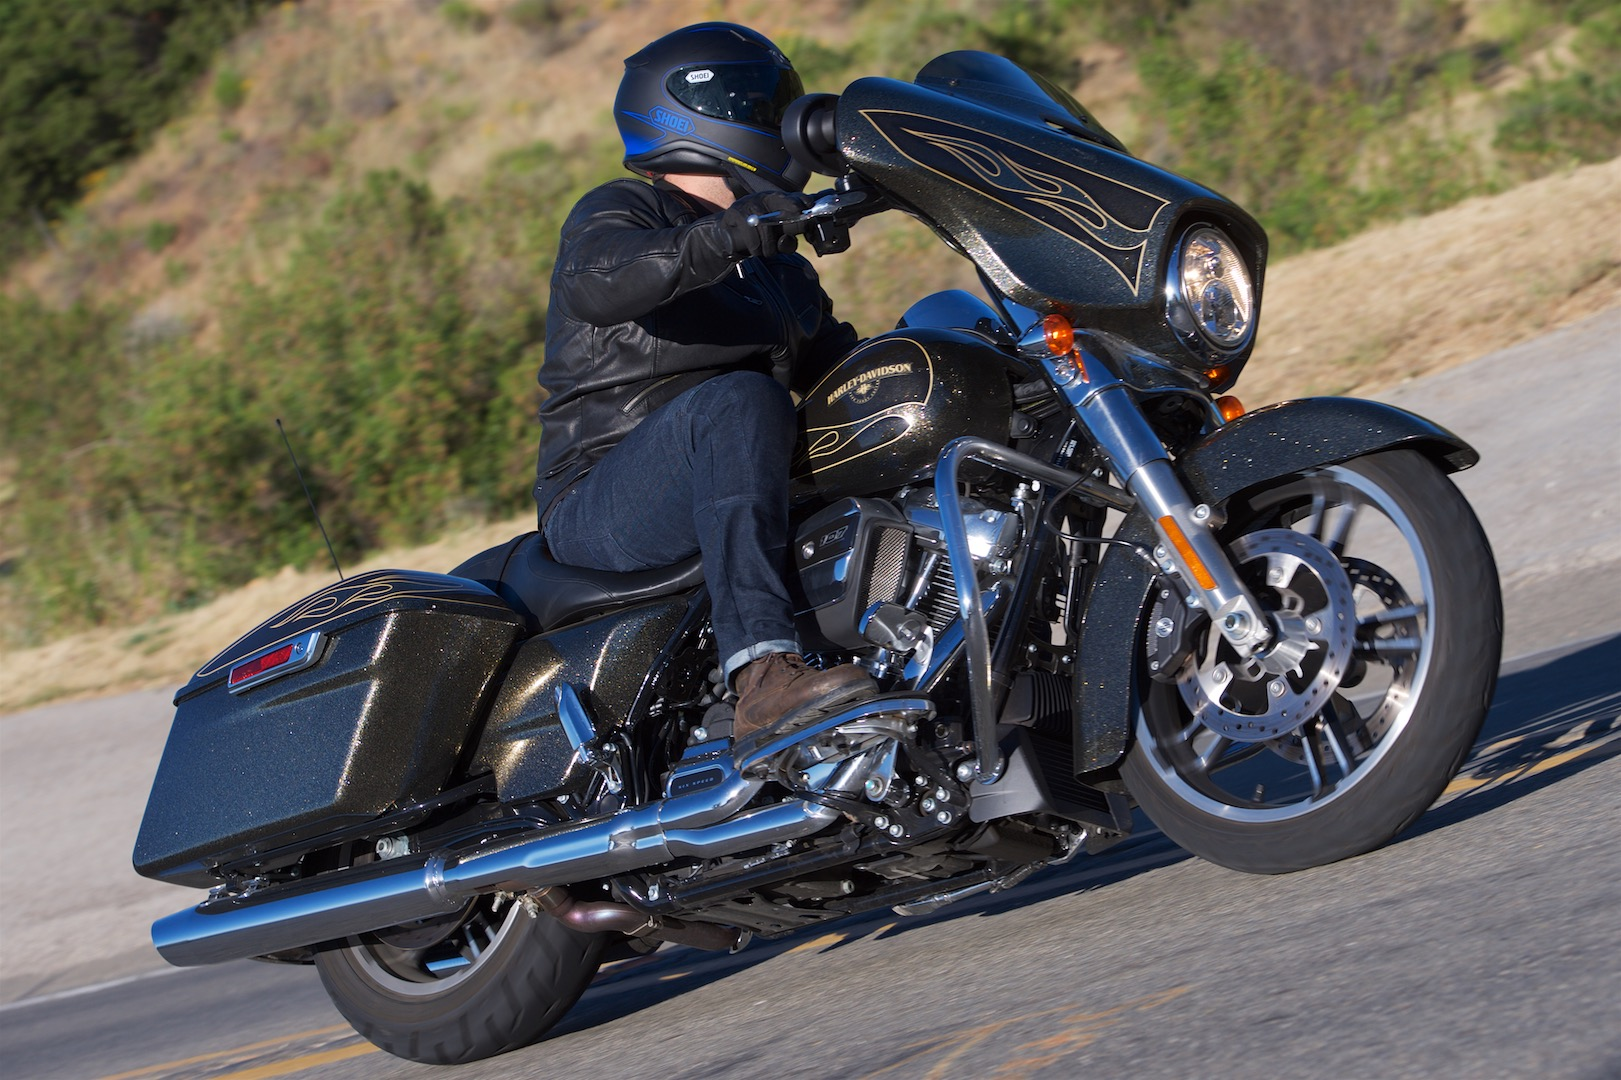 Top 20 Motorcycles Of 2017: Harley-Davidson Street Glide